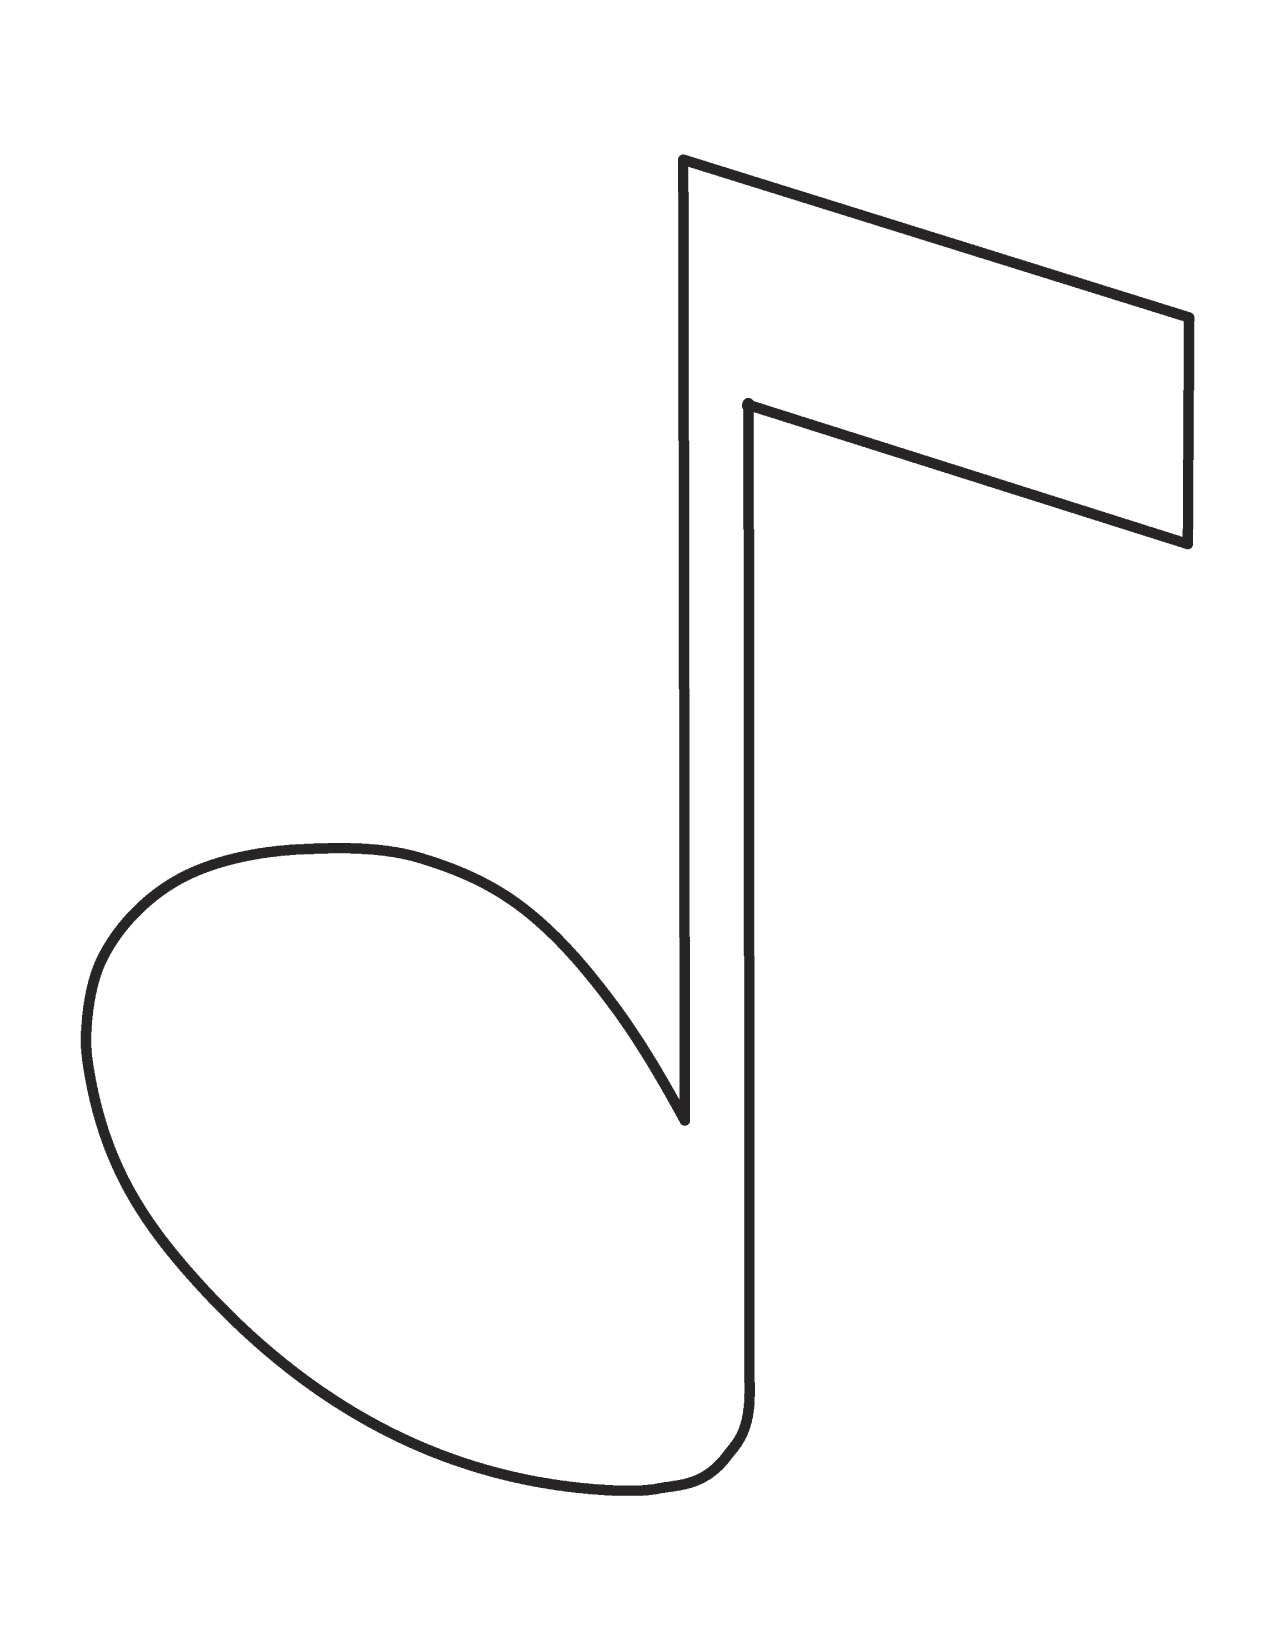 Single Music Note Clipart - Clipart Kid